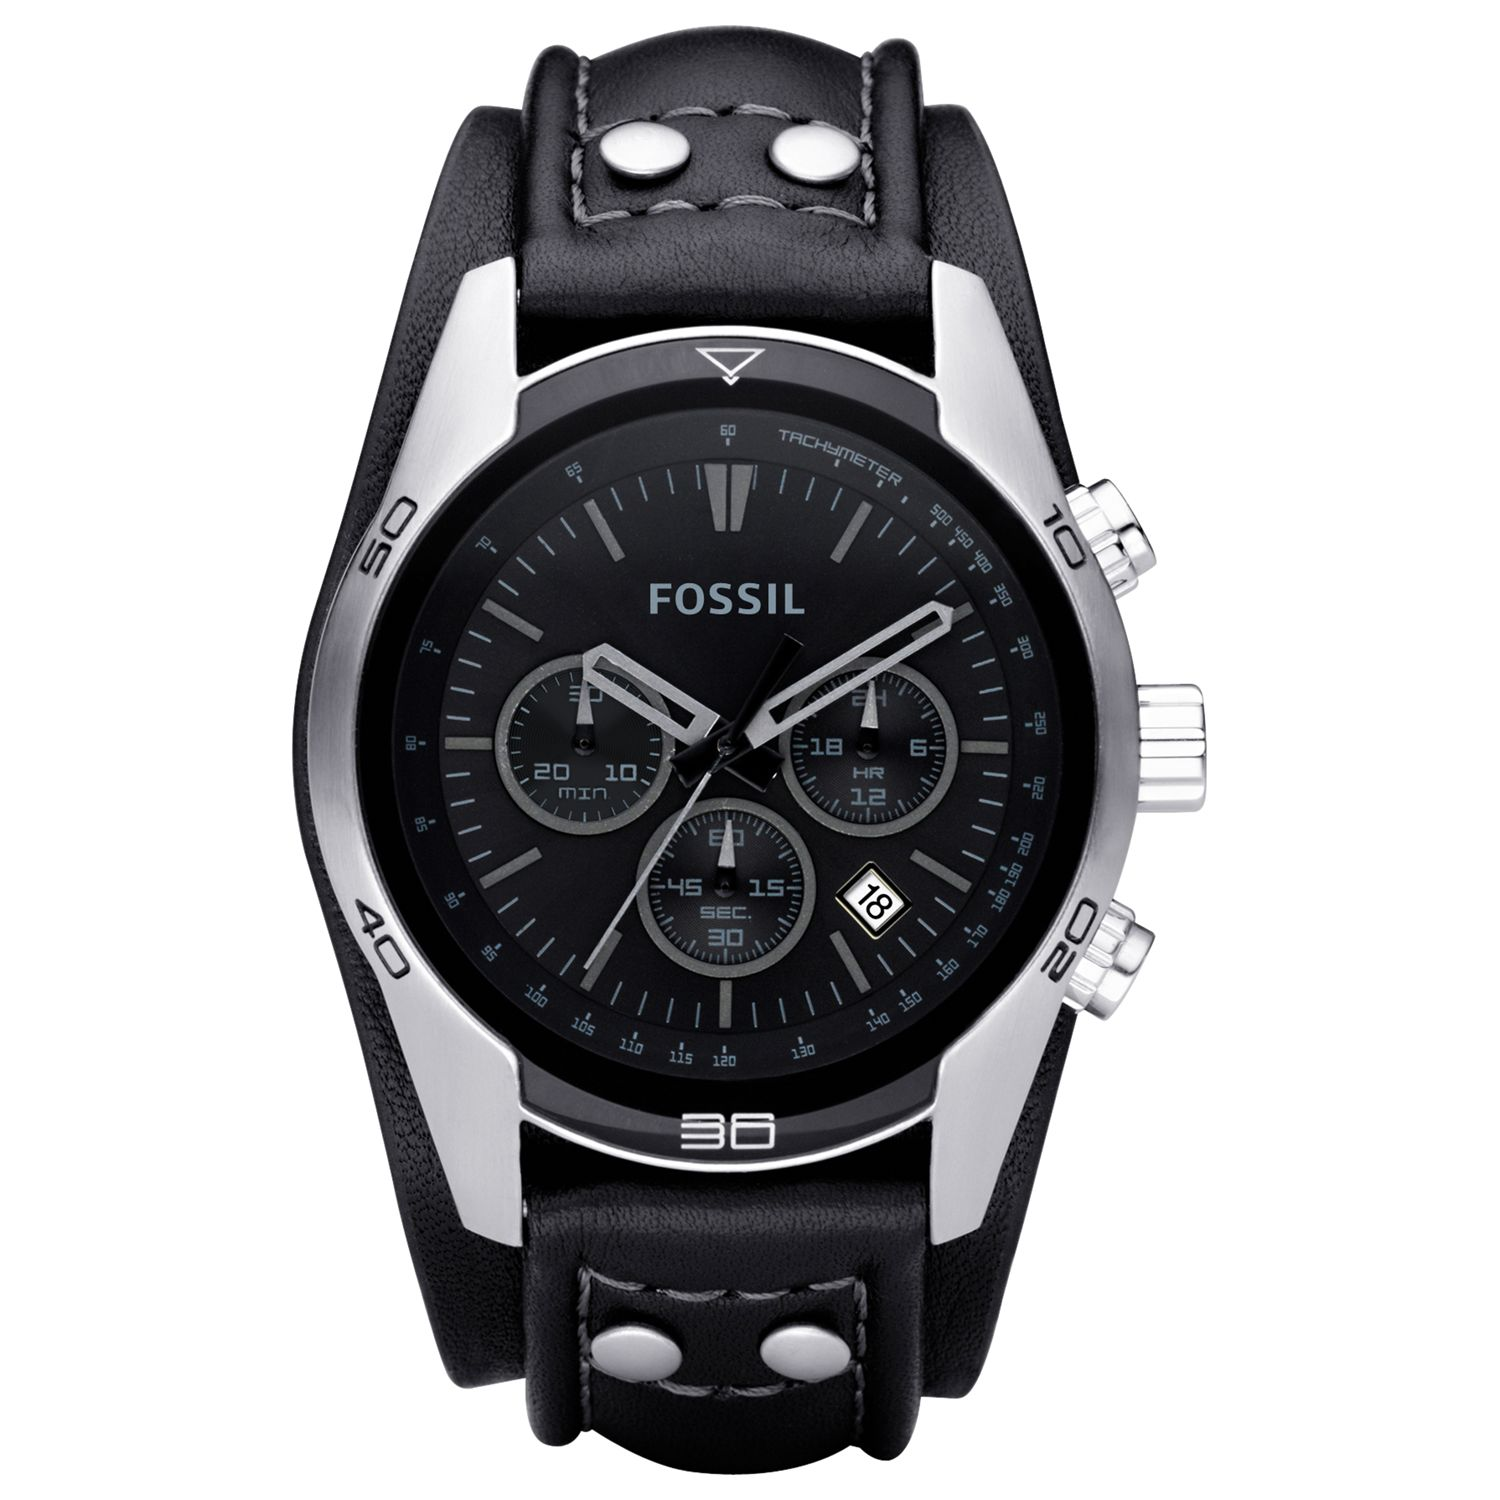 Fossil CH2586 Men's Chronograph Leather Strap Watch, Black